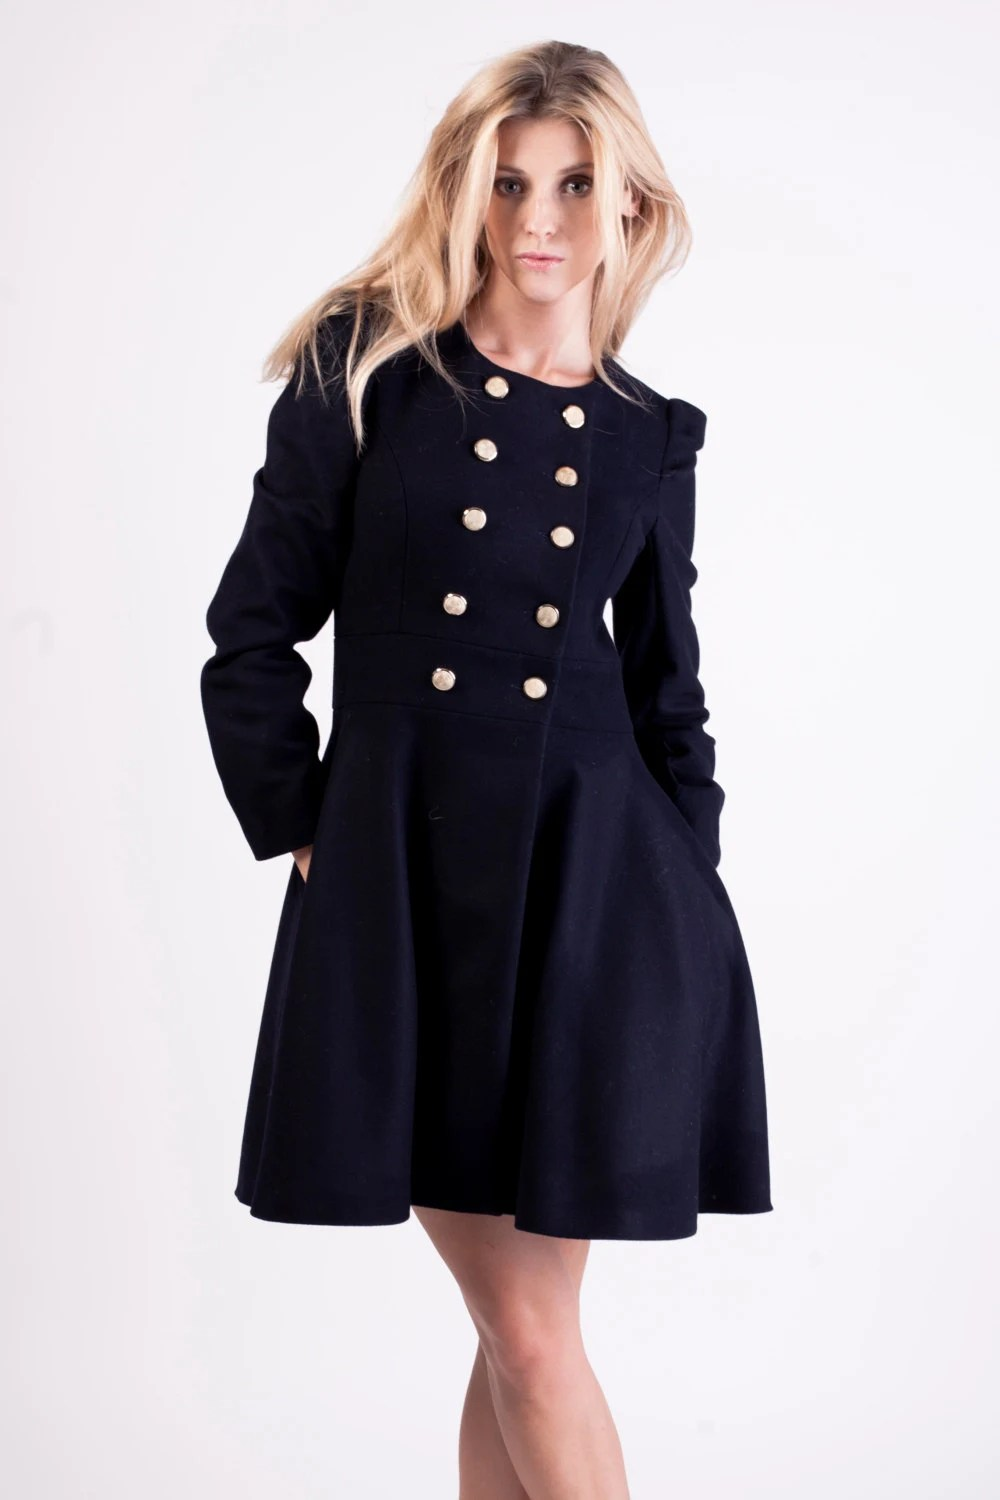 Navy blue coat&dress 2 in 1, with golden buttons. - DOROTHEboutique